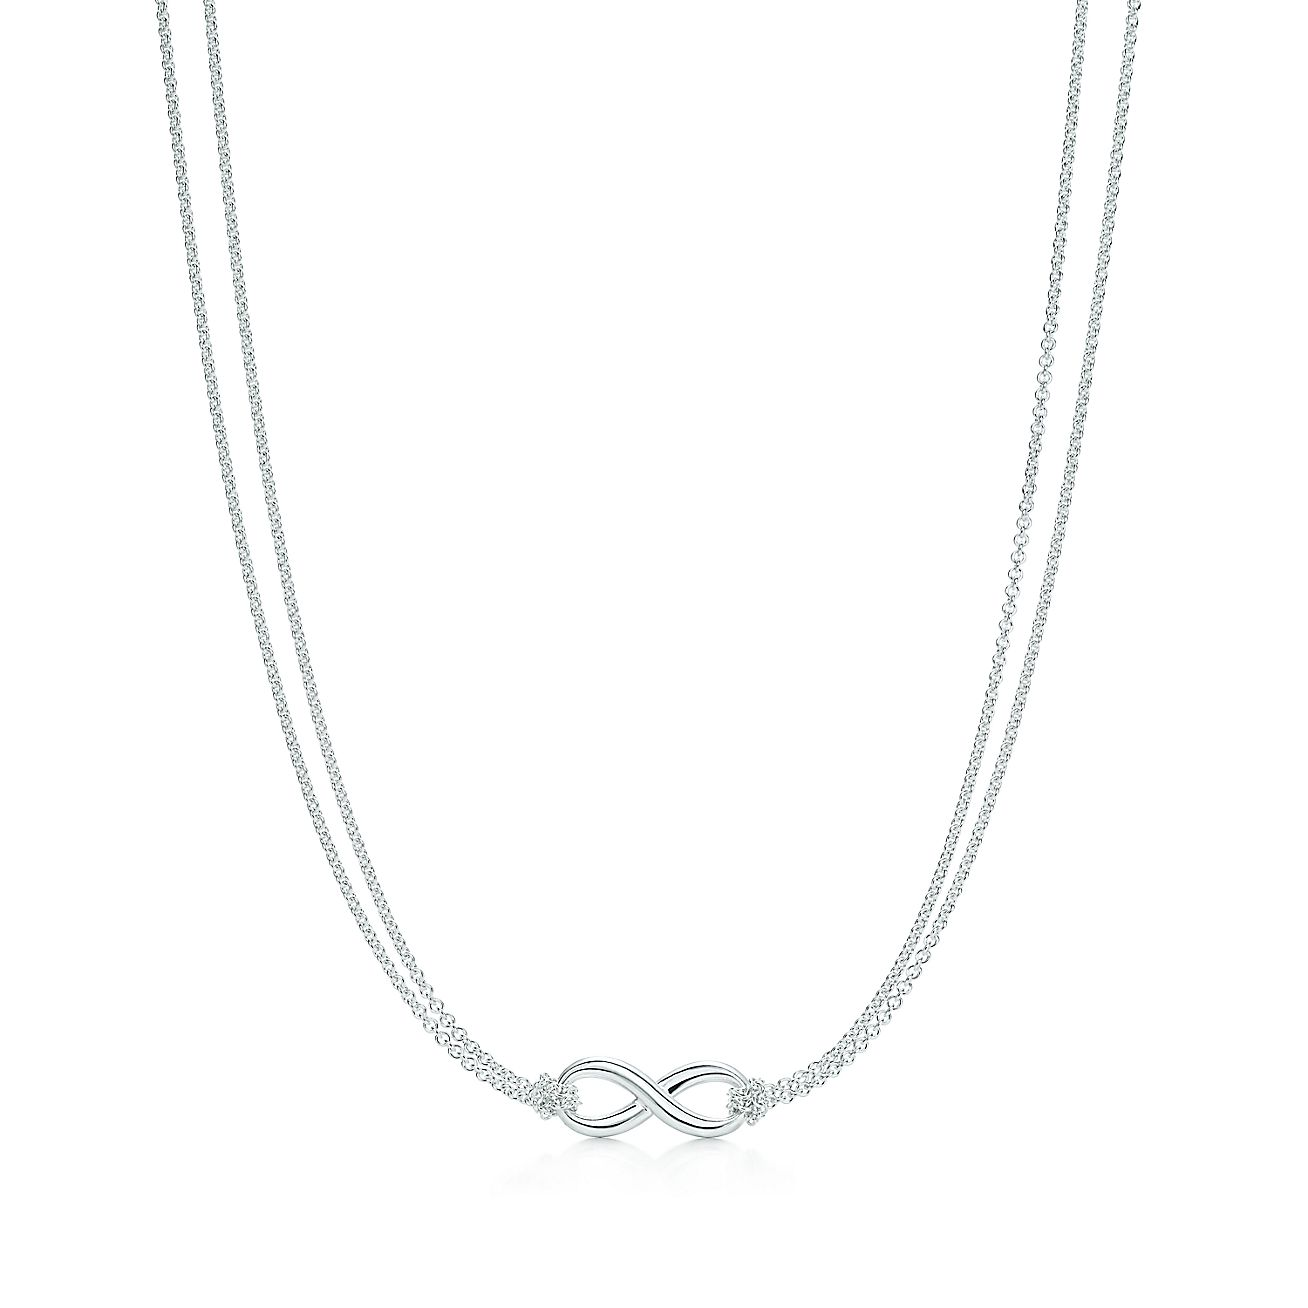 jewelry cross necklace infinity sign lariat personalized with